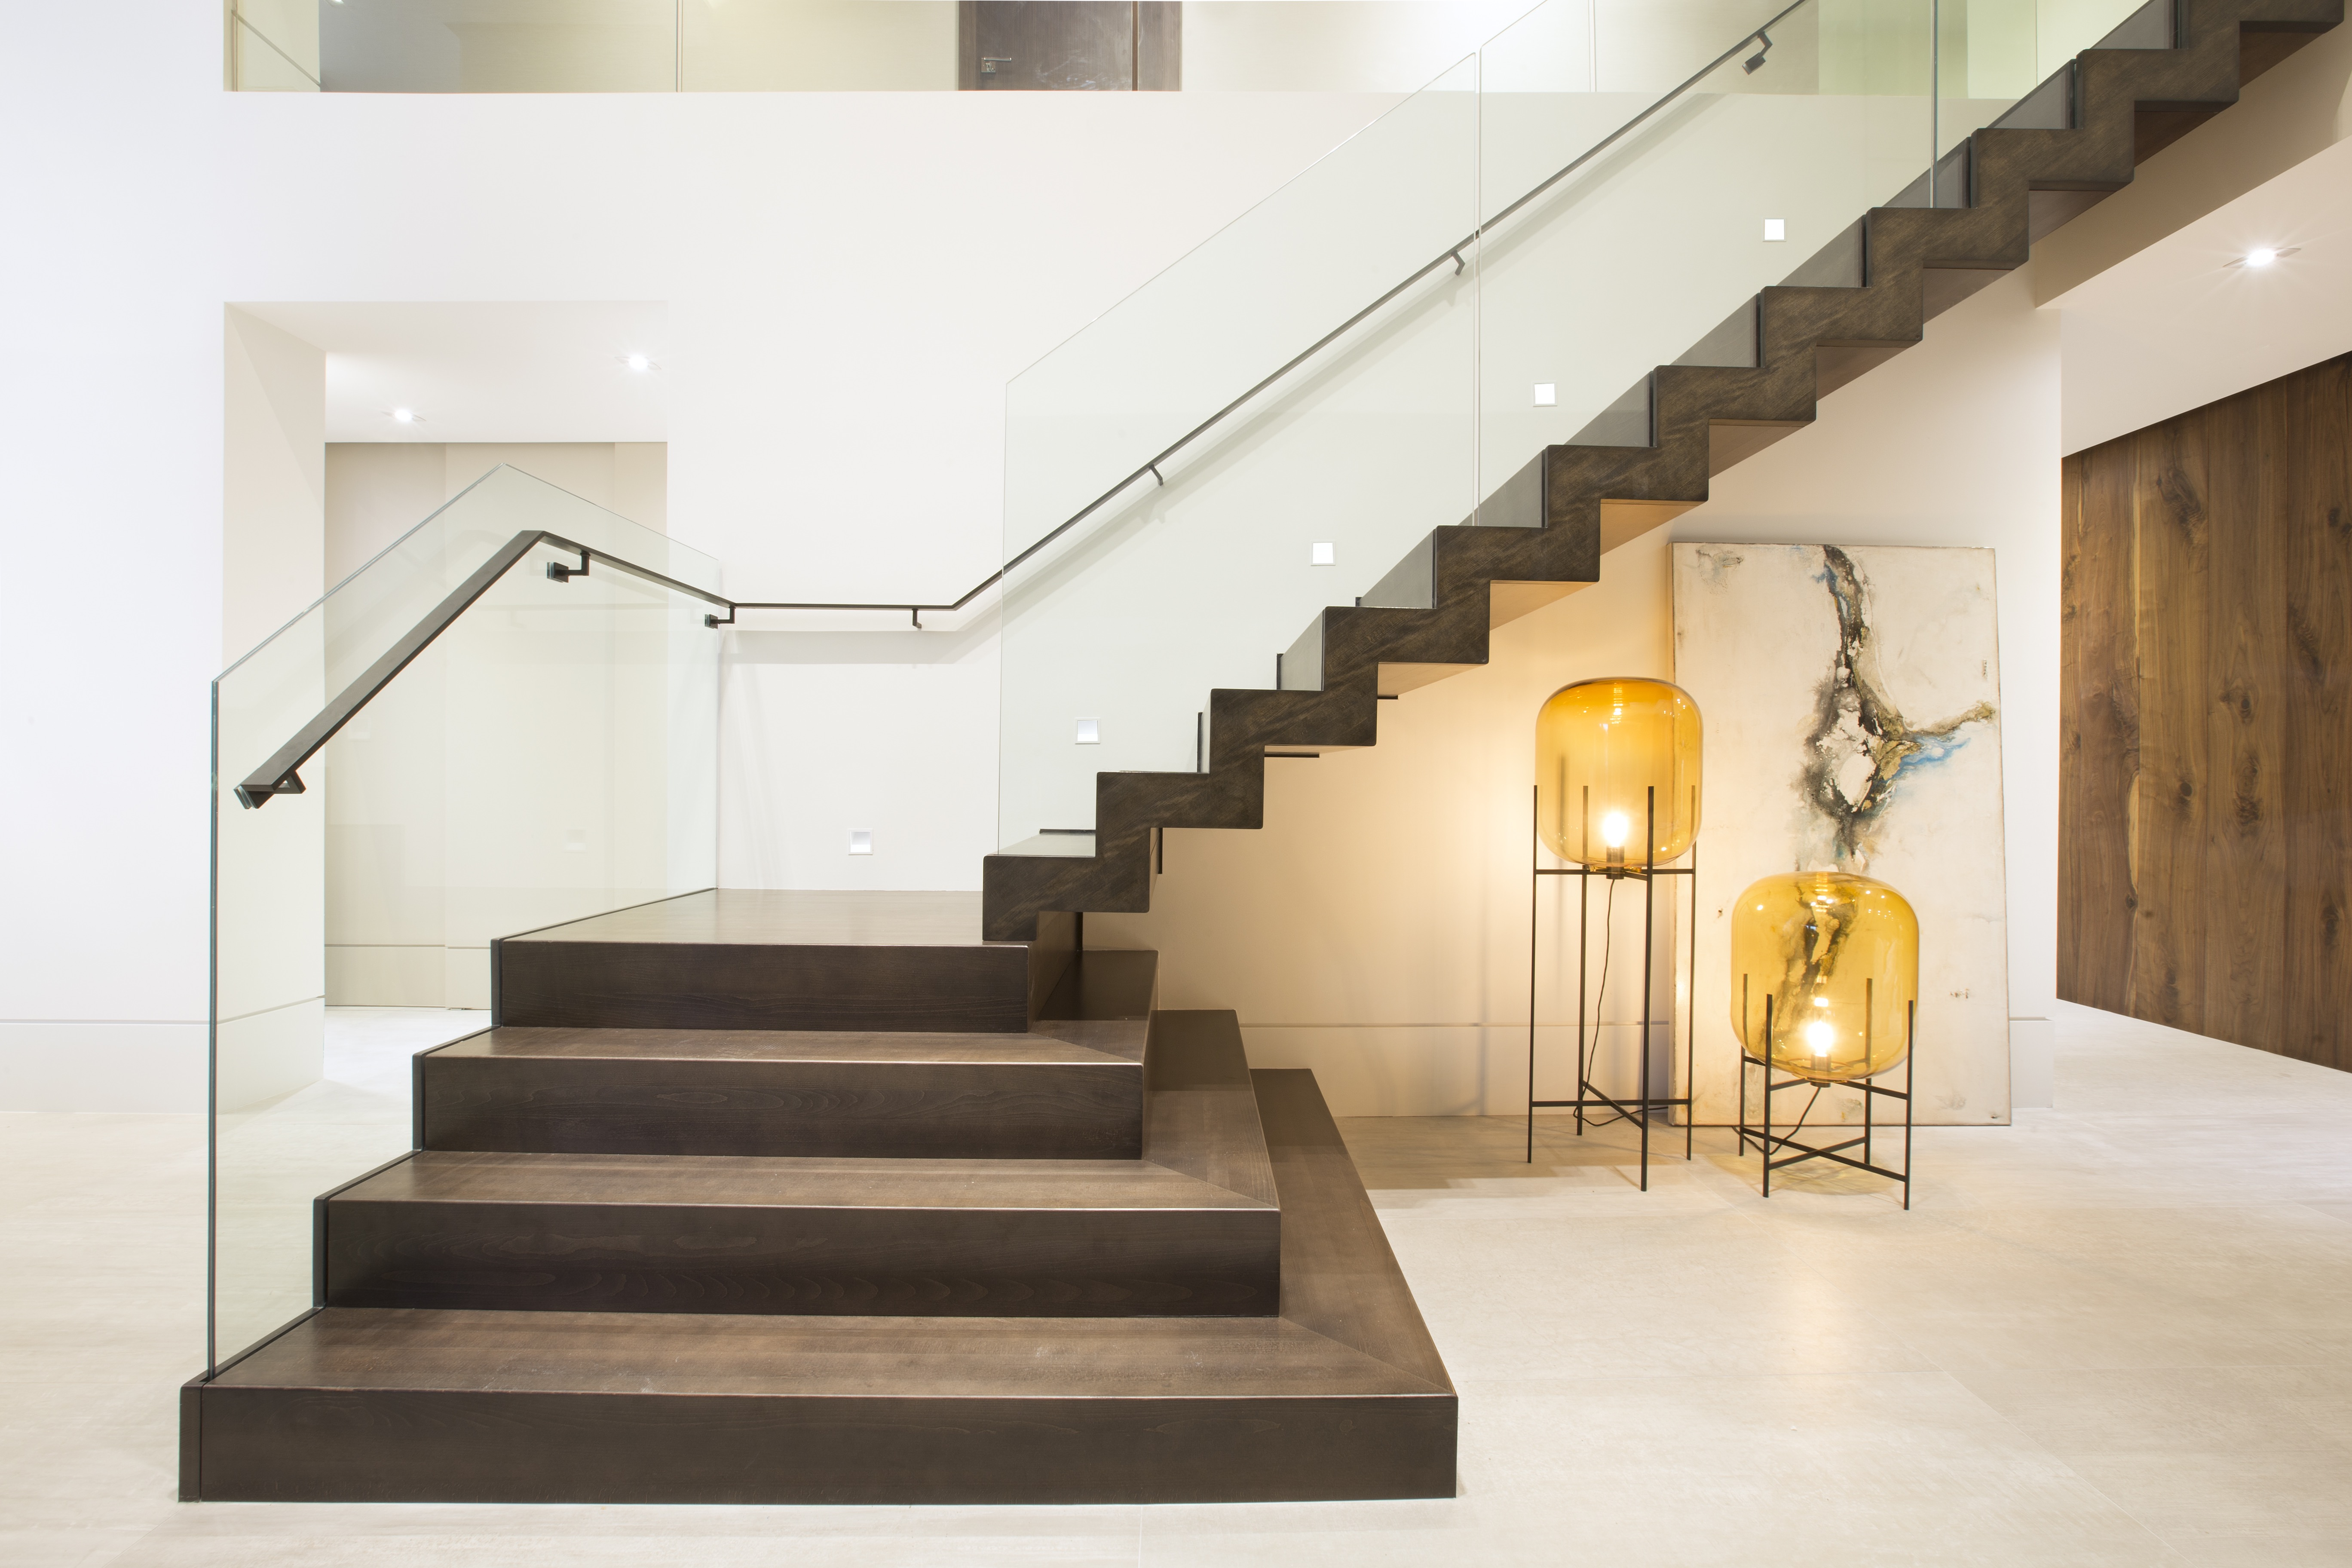 Luxury Loft Stairs With Glass Railing (Image 4 of 10)